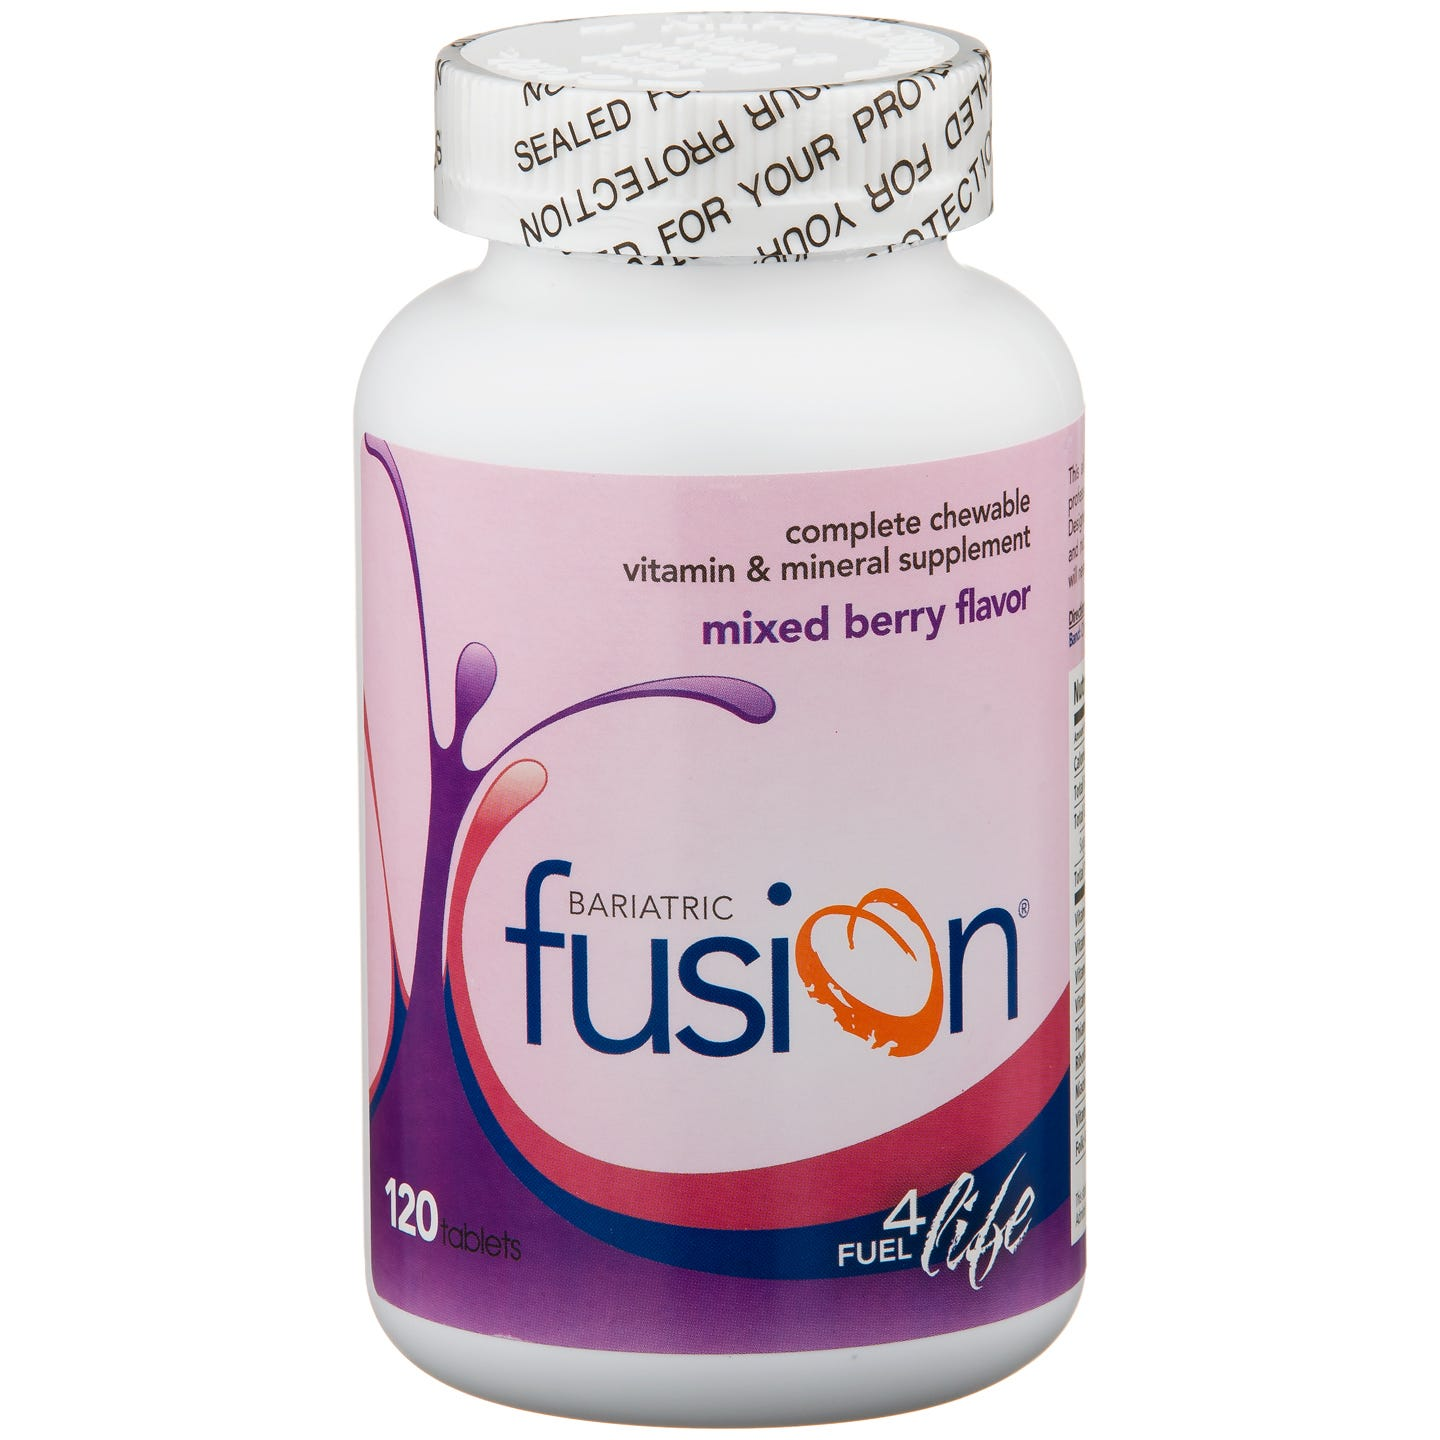 Bariatric Fusion Chewable Vitamin & Mineral Supplement - Mixed Berry